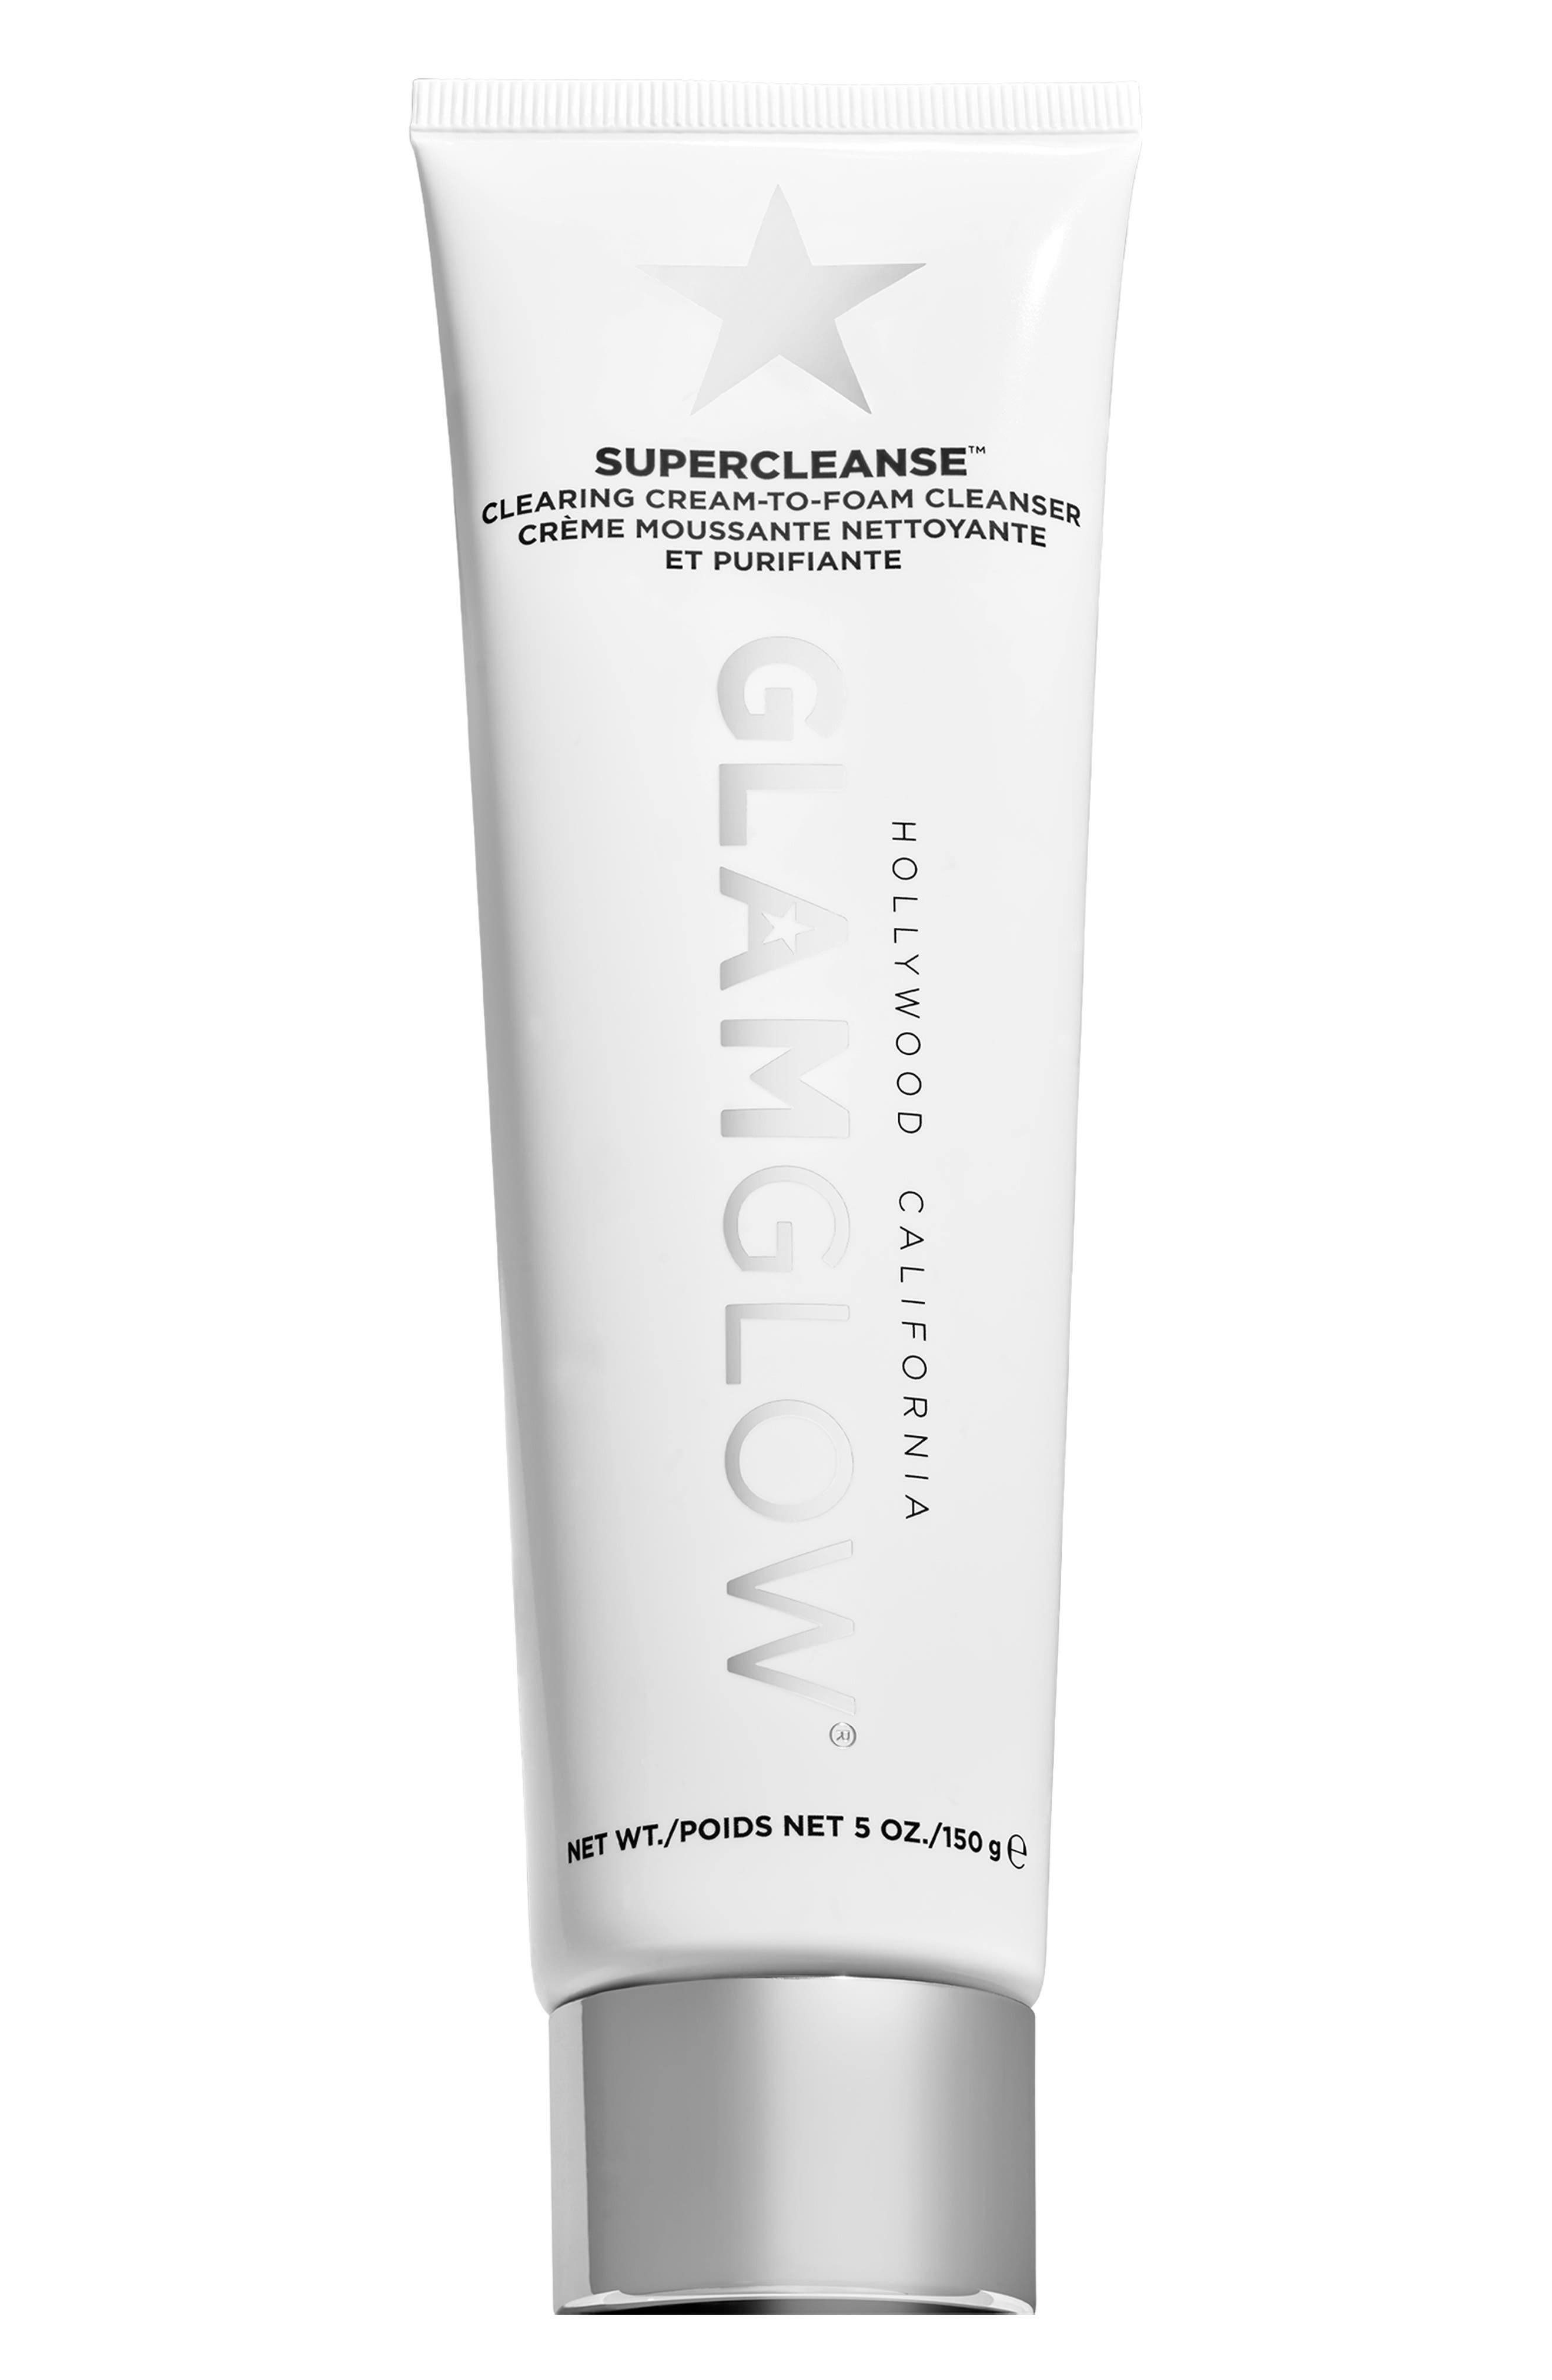 Glamglow Supercleanse(TM) Clearing Cream-To-Foam Cleanser